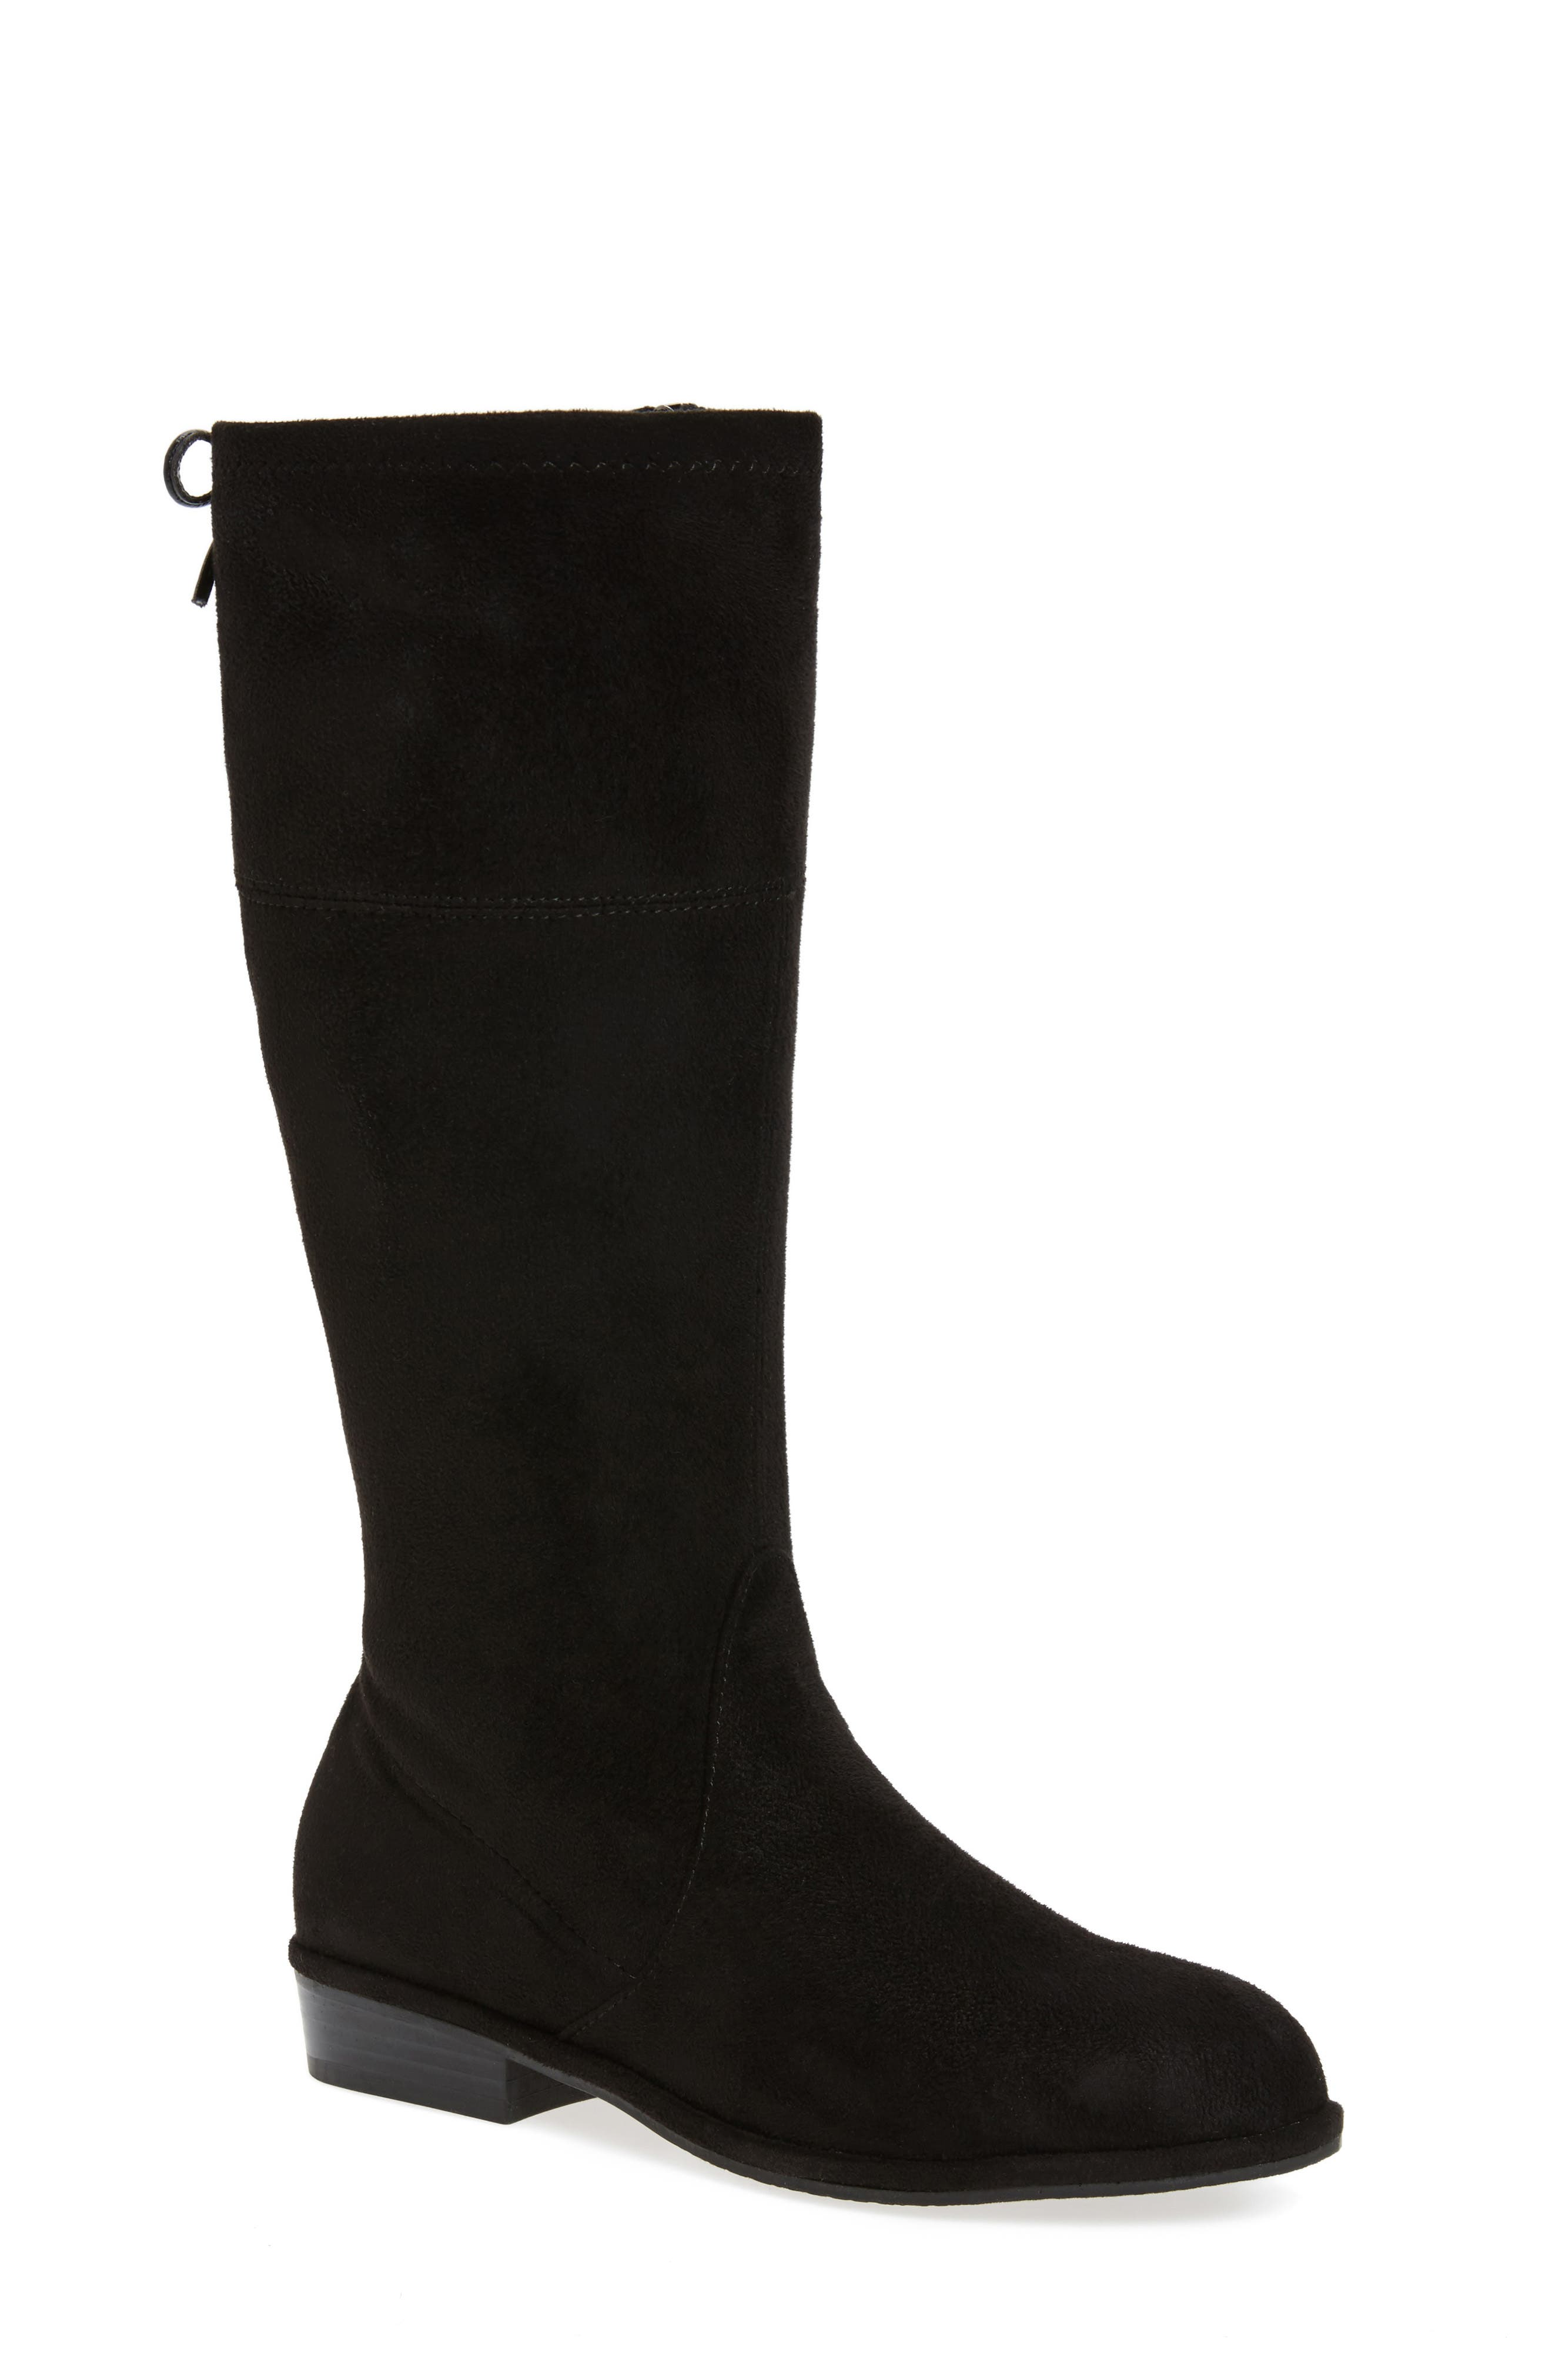 Main Image - Stuart Weitzman Lowland Bow Riding Boot (Toddler, Little Kid & Big Kid)